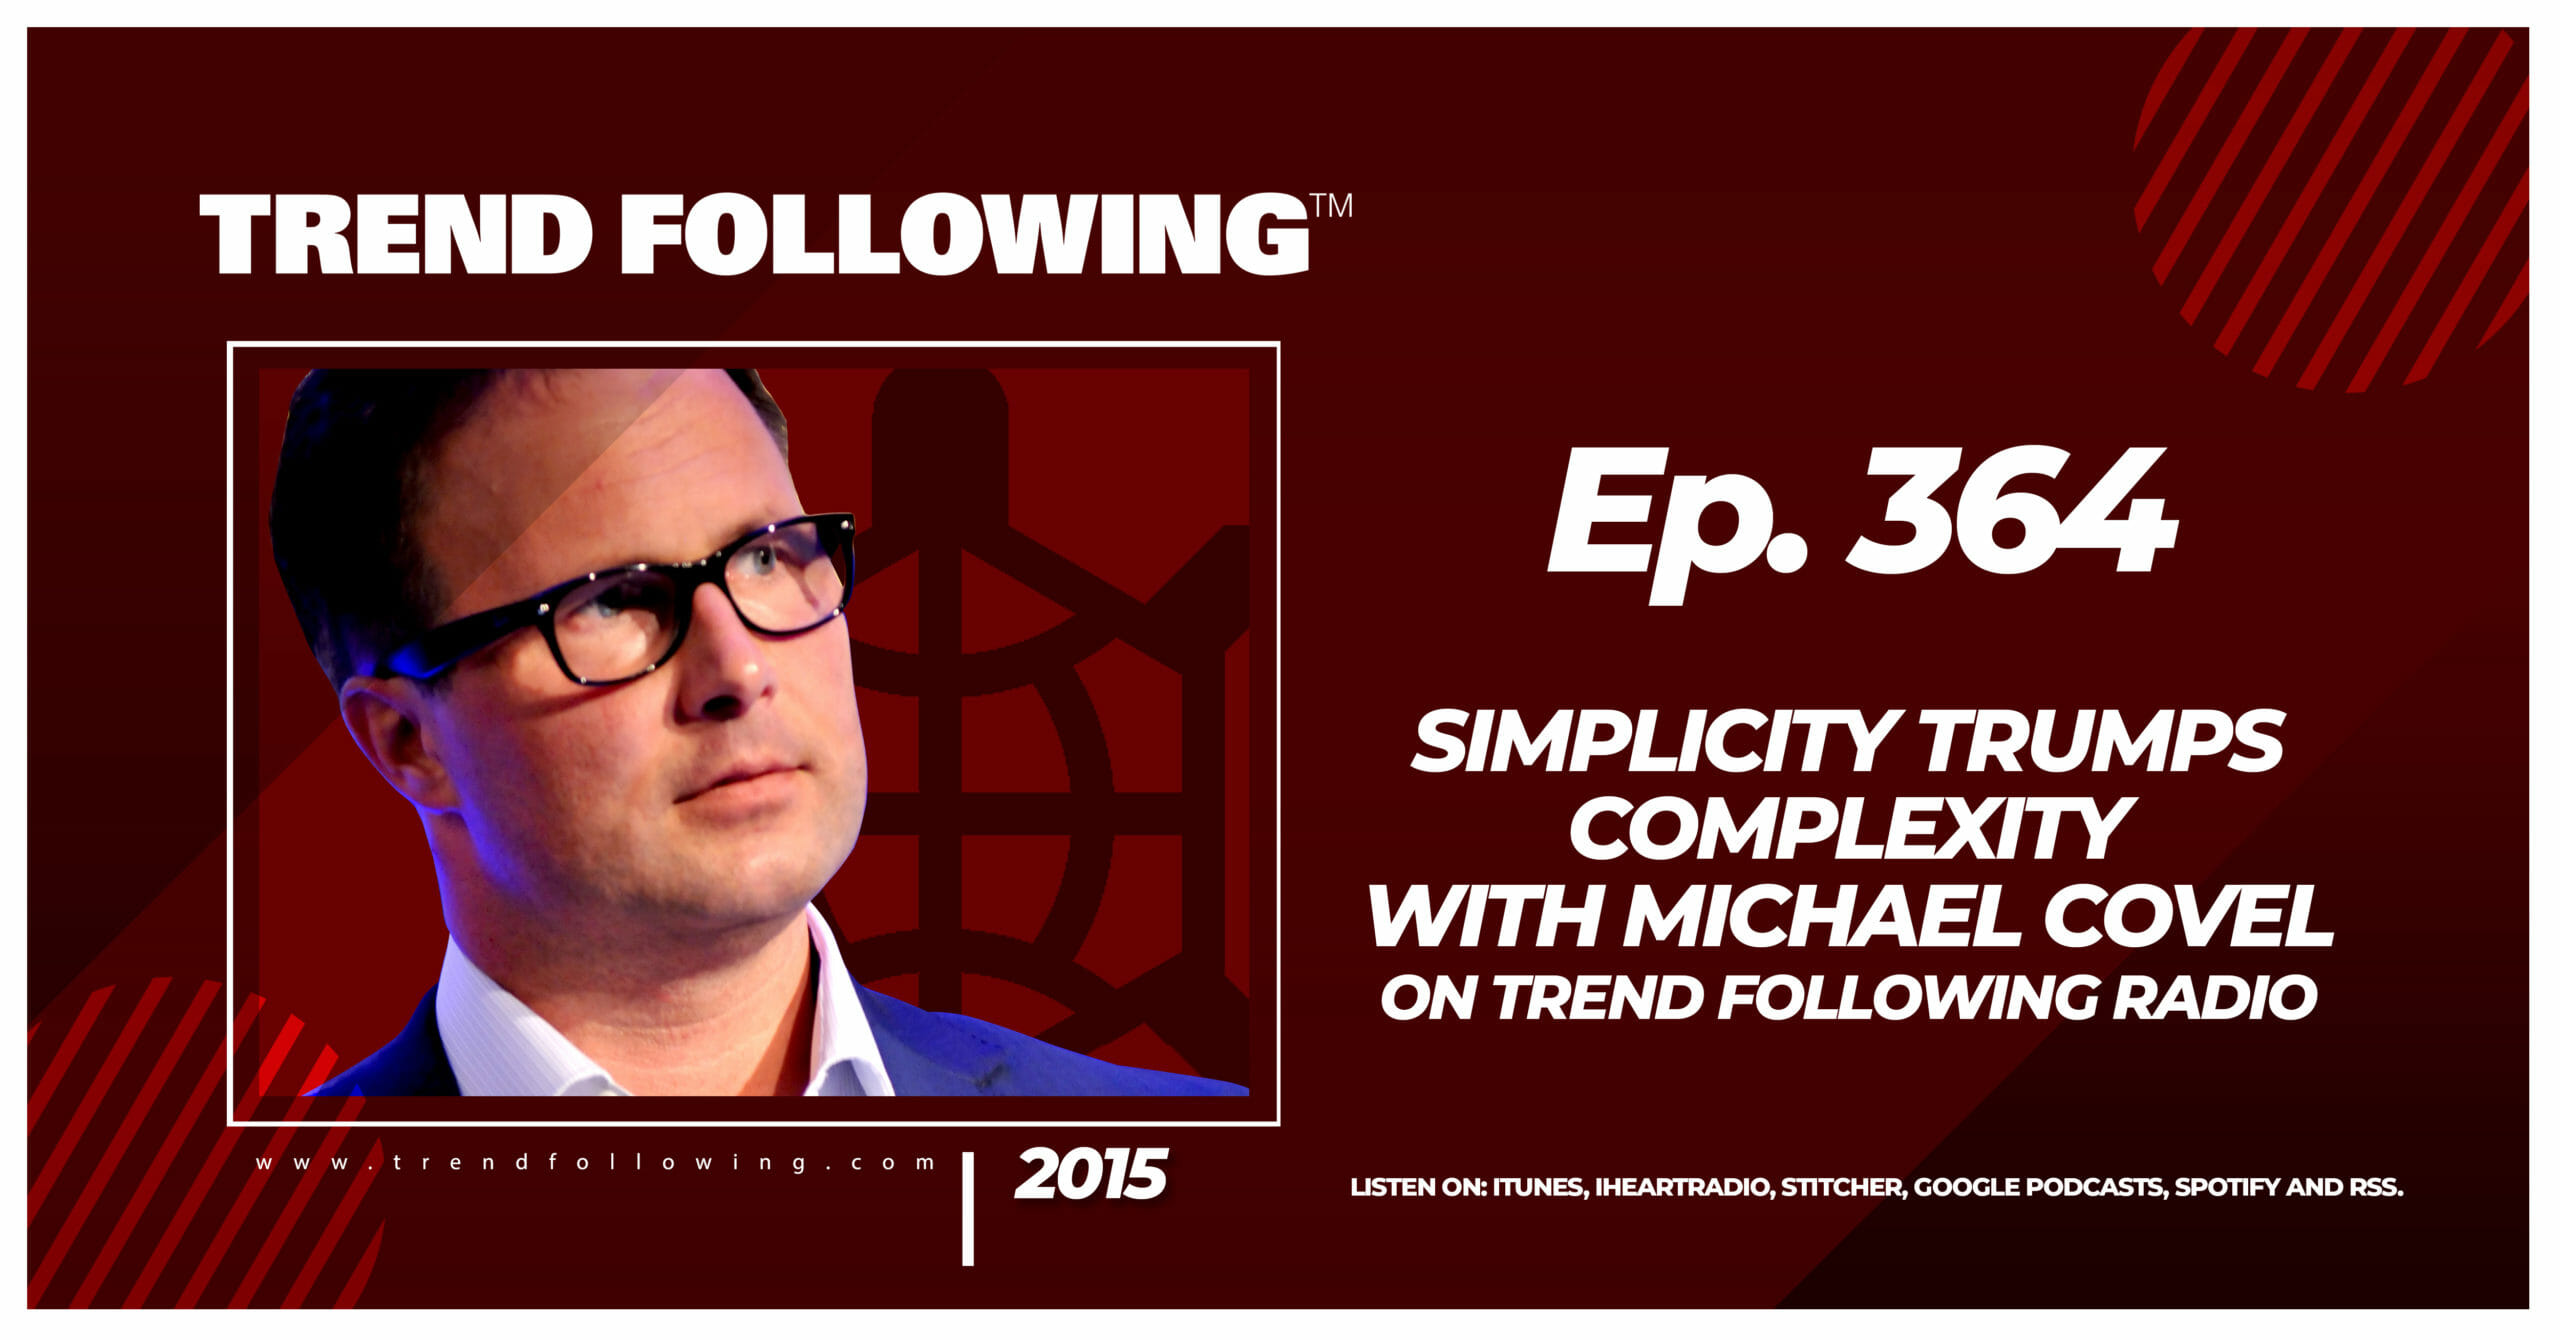 Simplicity Trumps Complexity with Michael Covel on Trend Following Radio